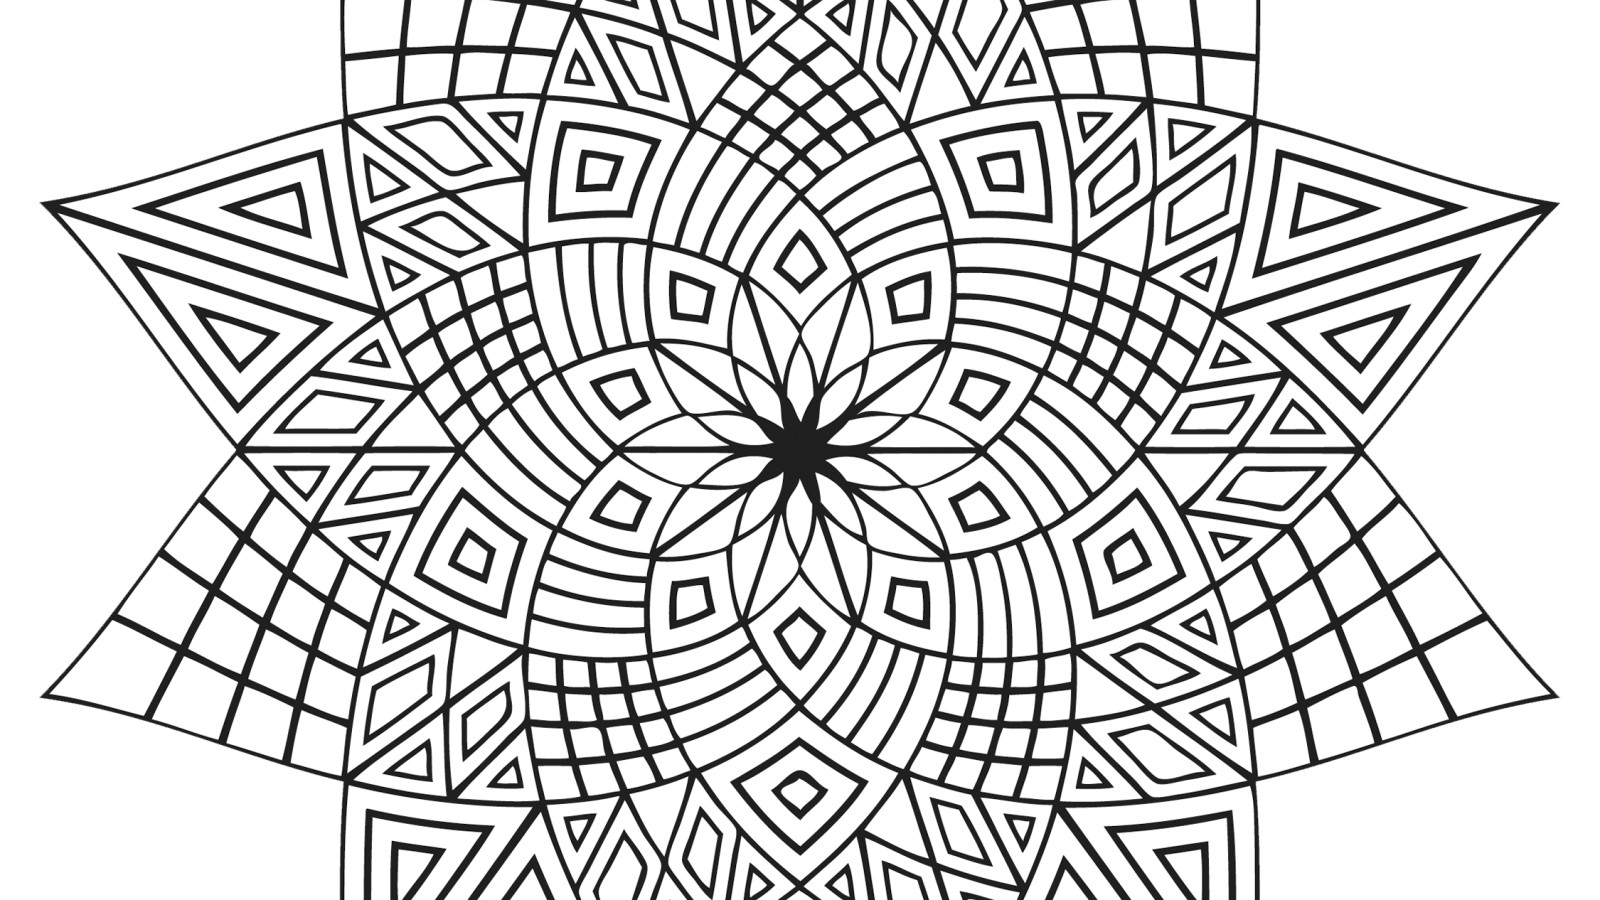 Coloring Pages Geometrical Coloring Pages geometric coloring sheet eassume com 70 pages to print and customize